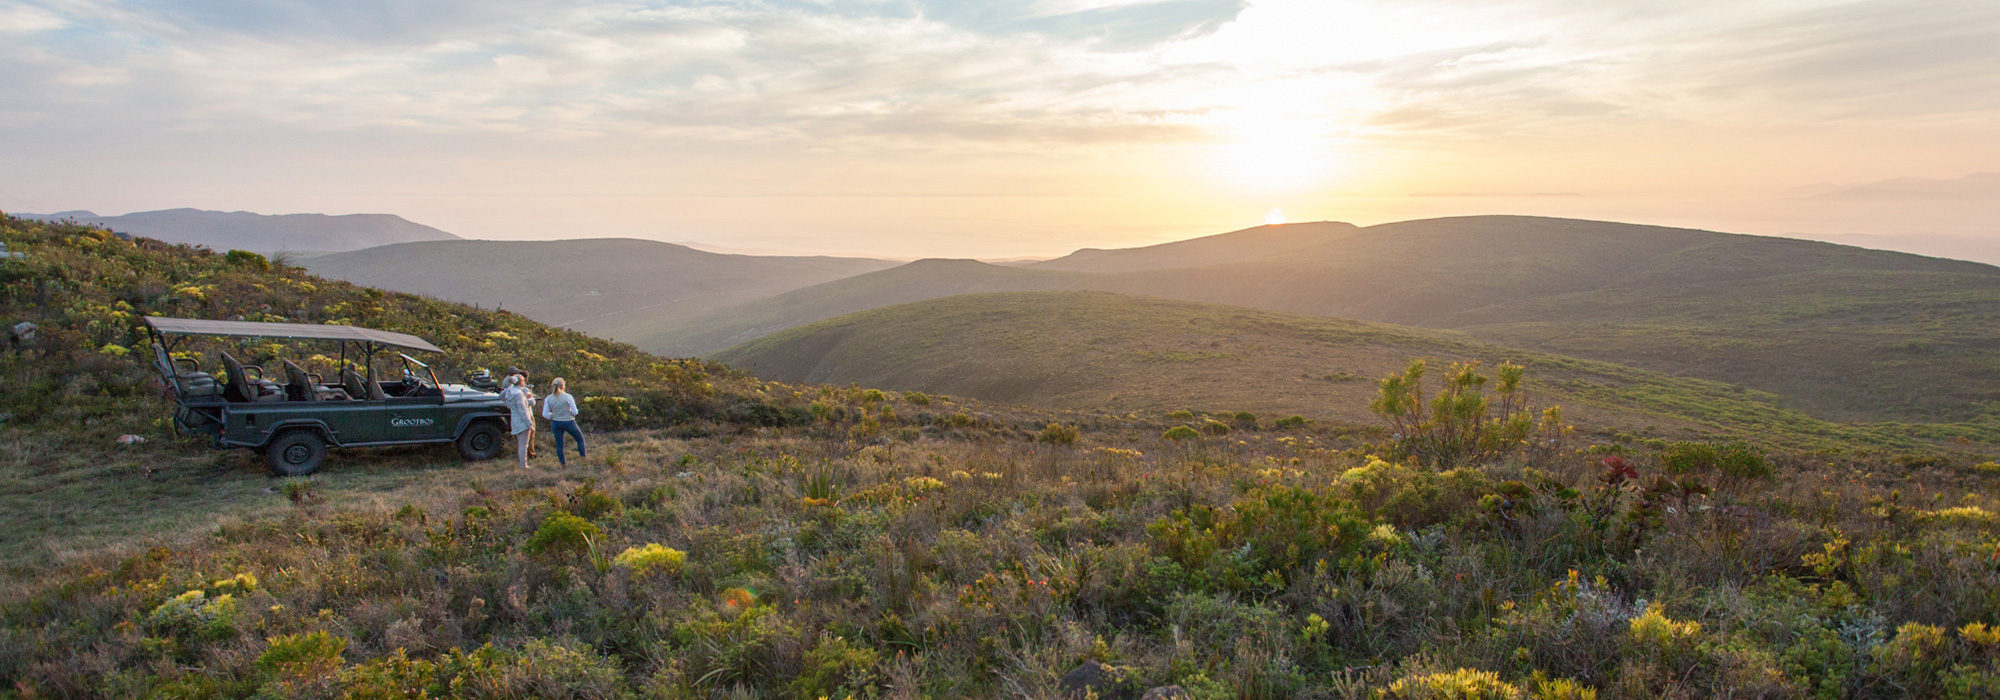 The Award-Winning Grootbos Nature Reserve